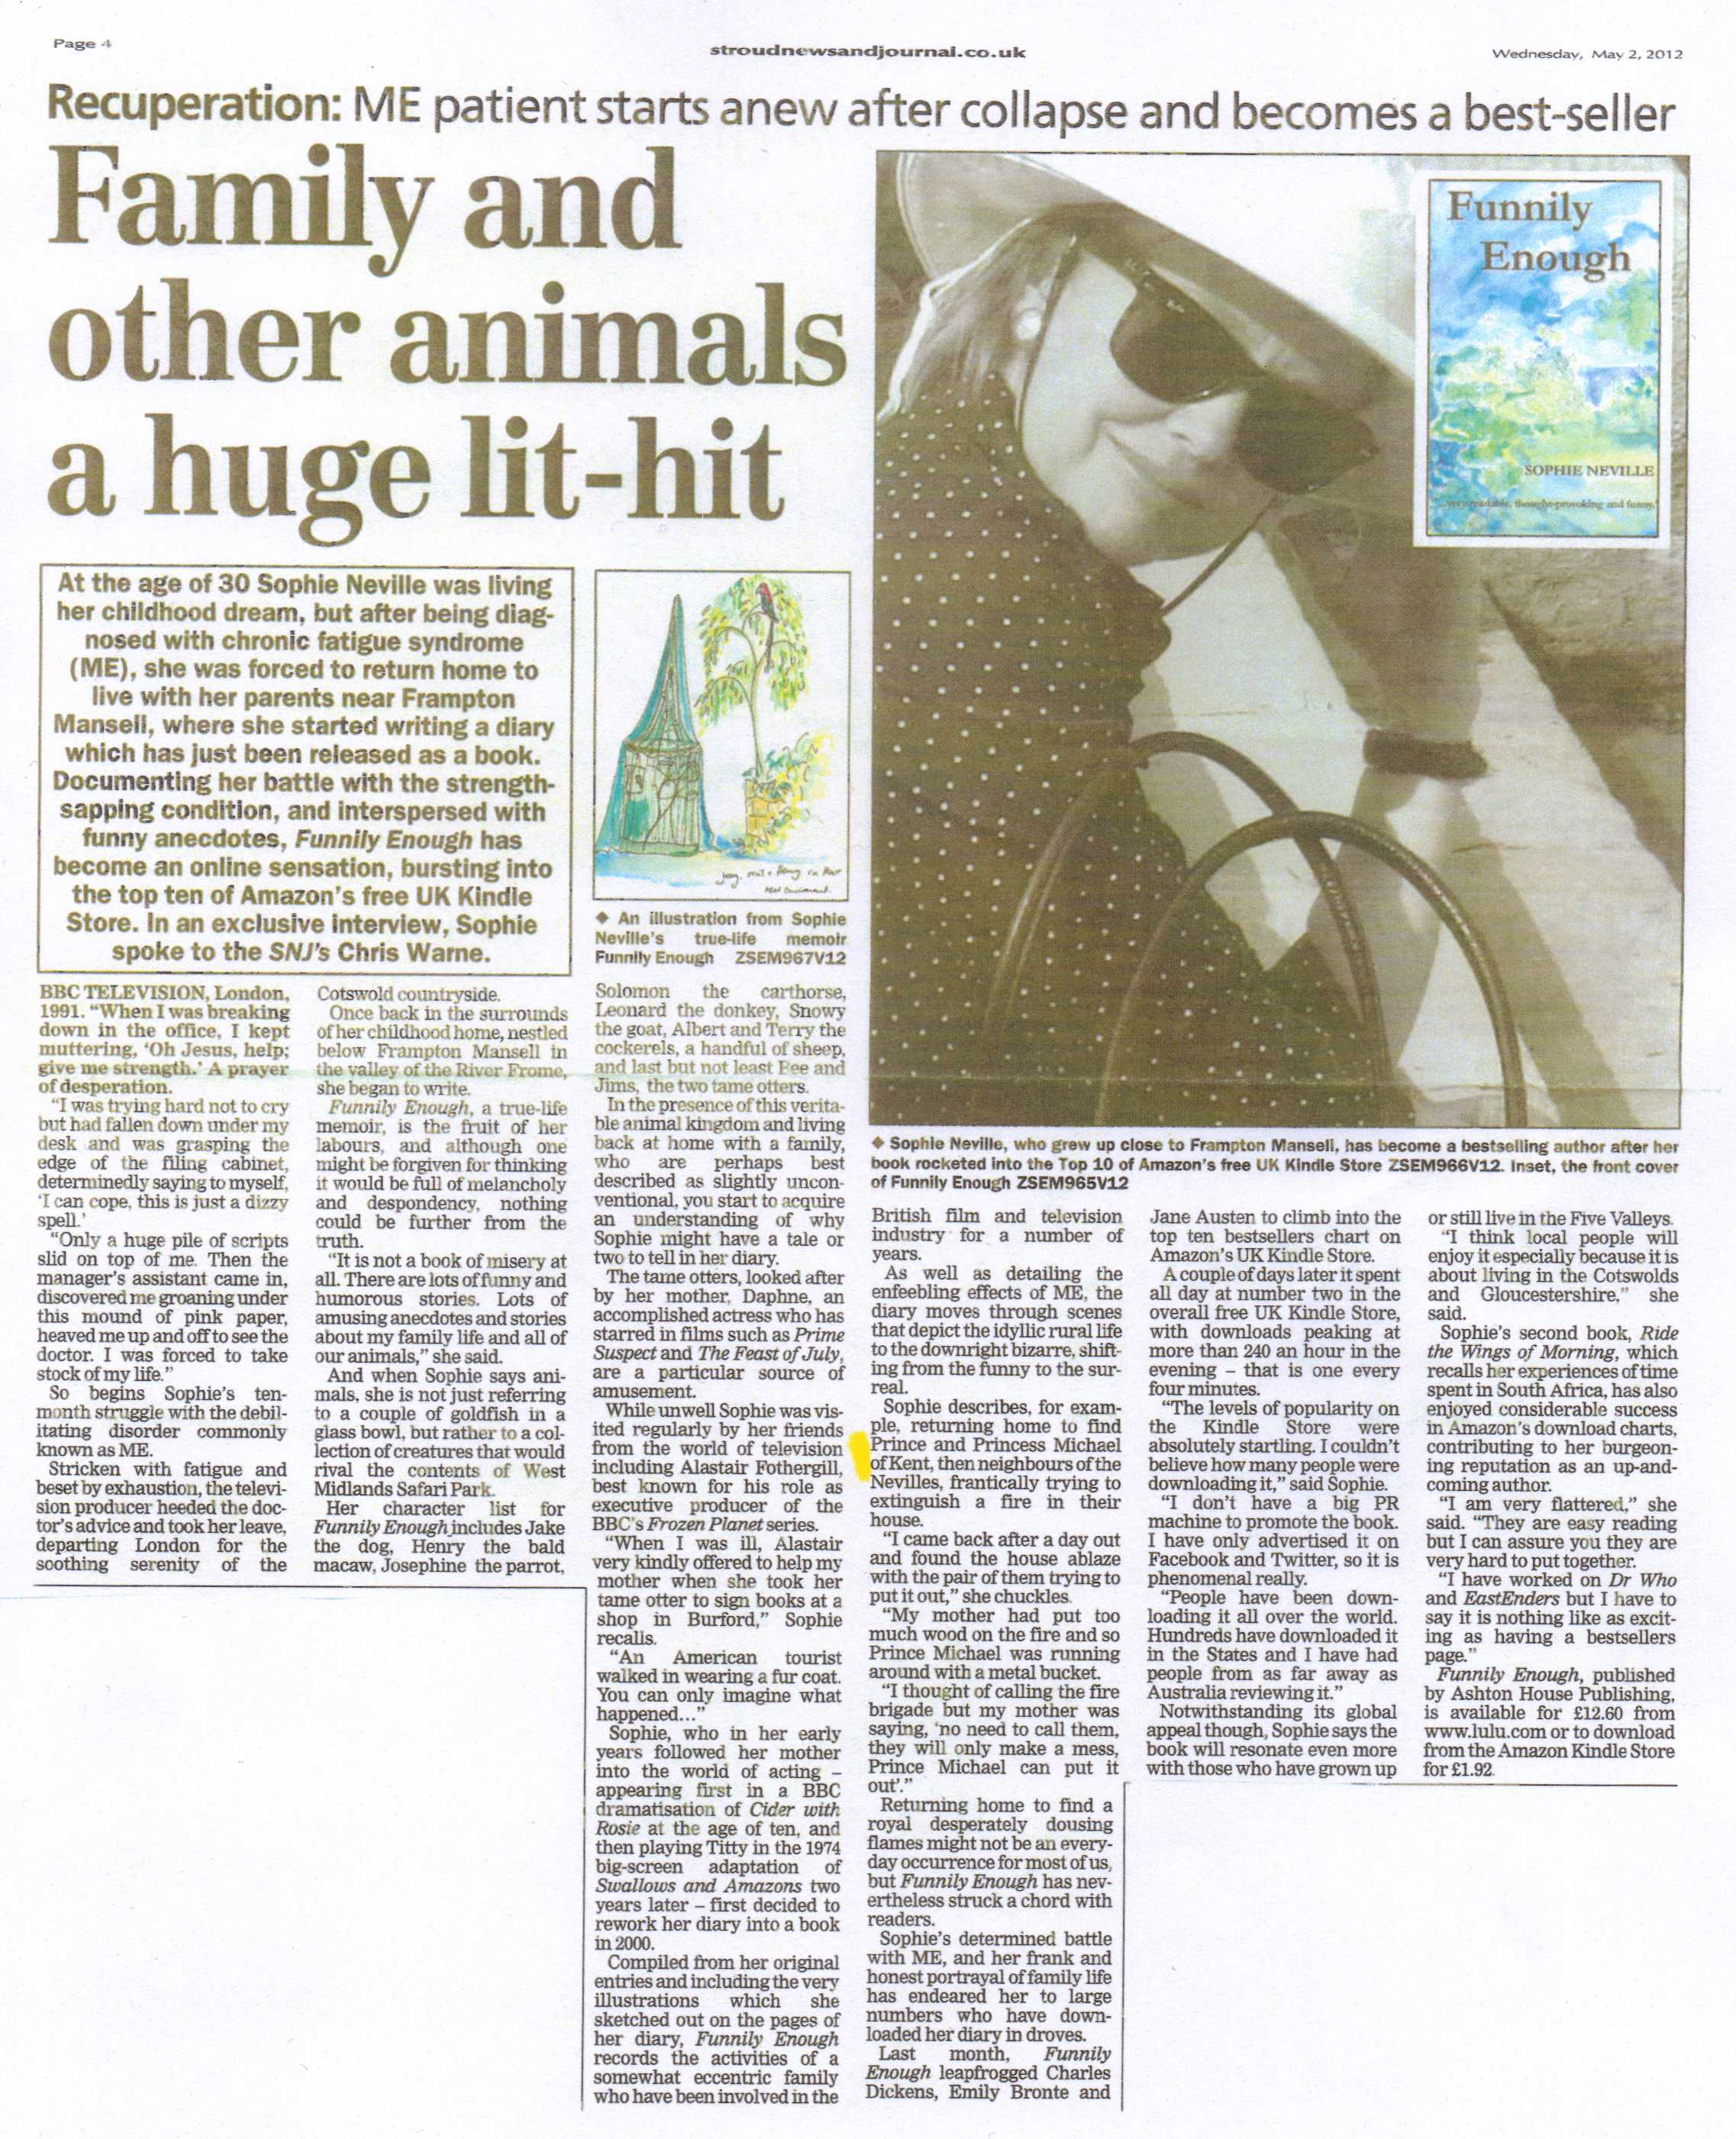 http://www.stroudnewsandjournal.co.uk/news/9685926._I_was_forced_to_take_stock_of_my_life____bestselling_author_speaks_to_the_SNJ/